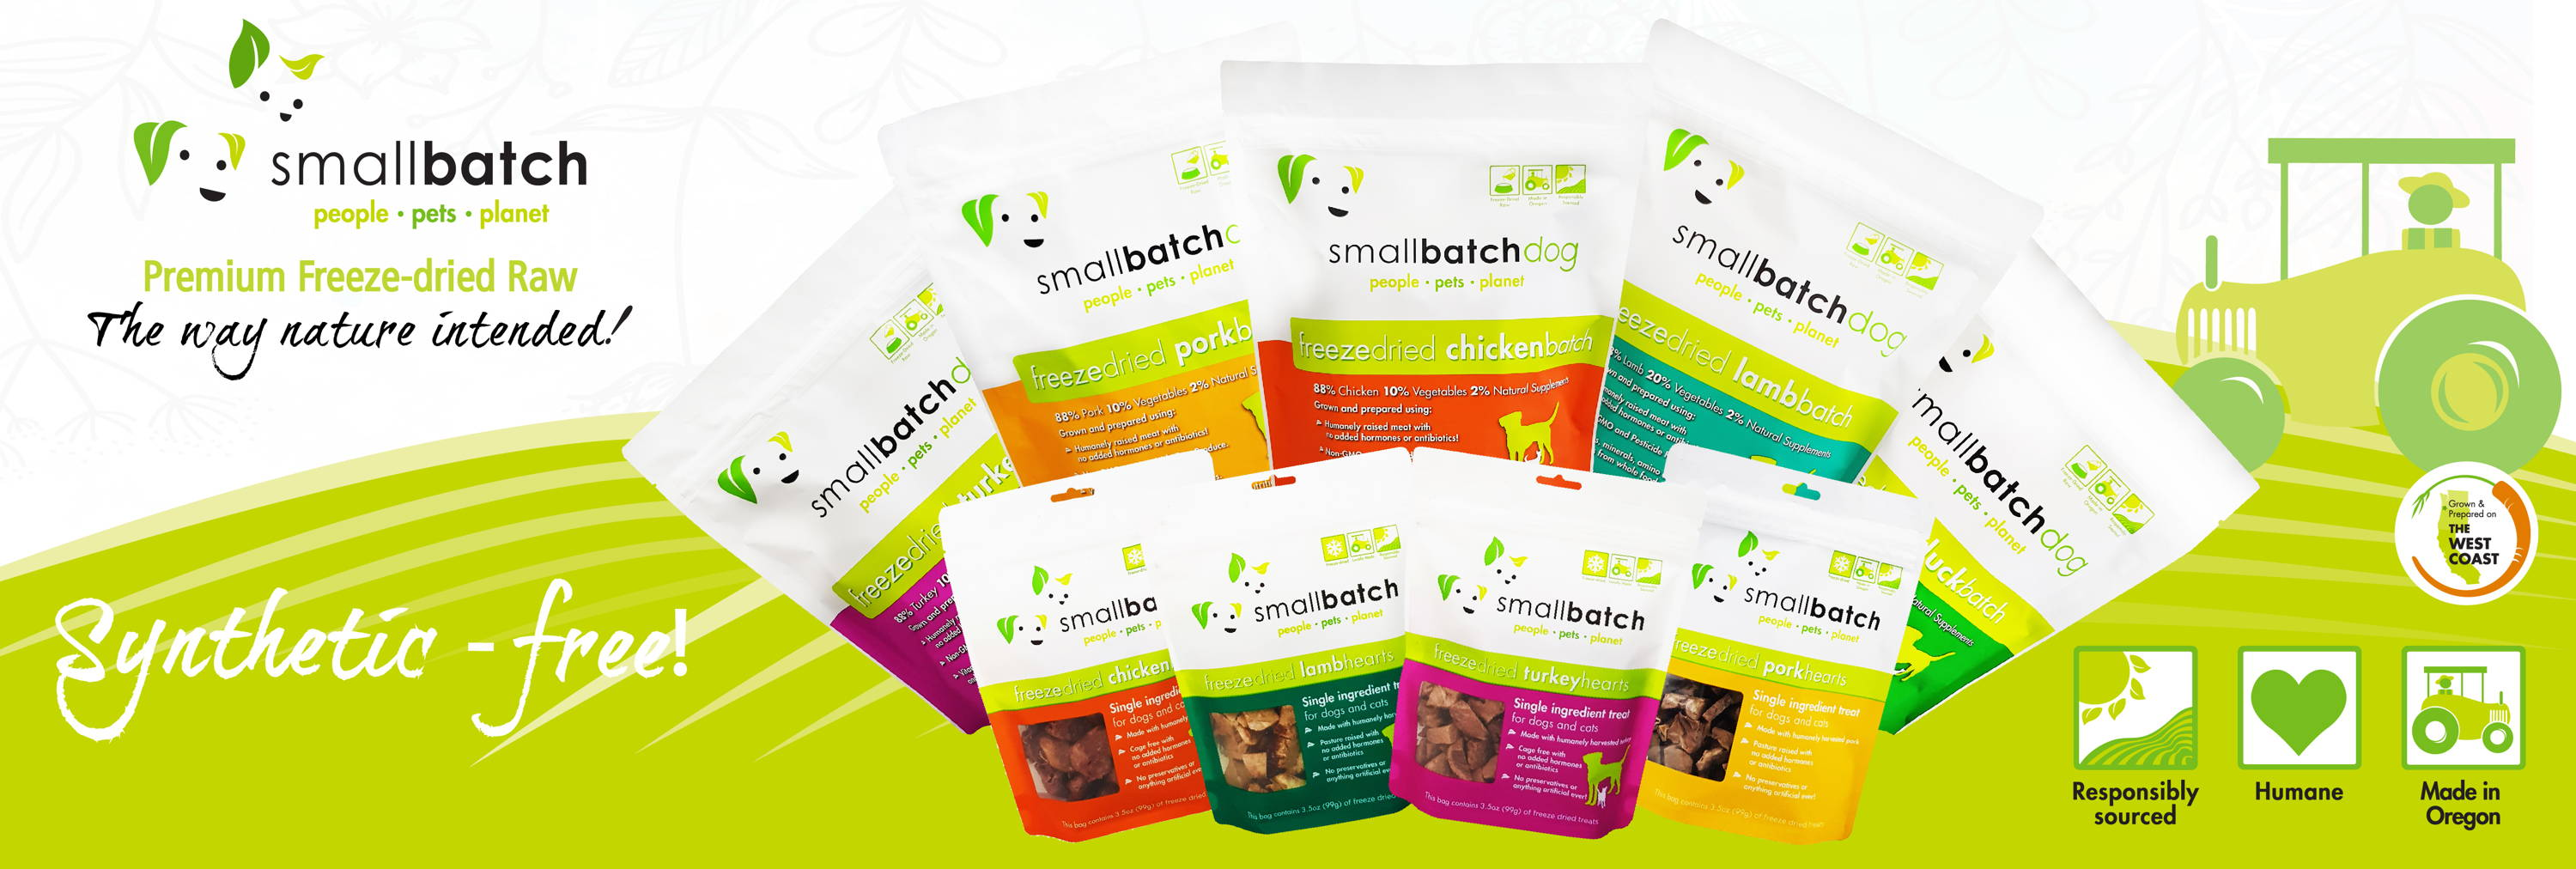 small batch freeze dried raw dog food and dog treats collection